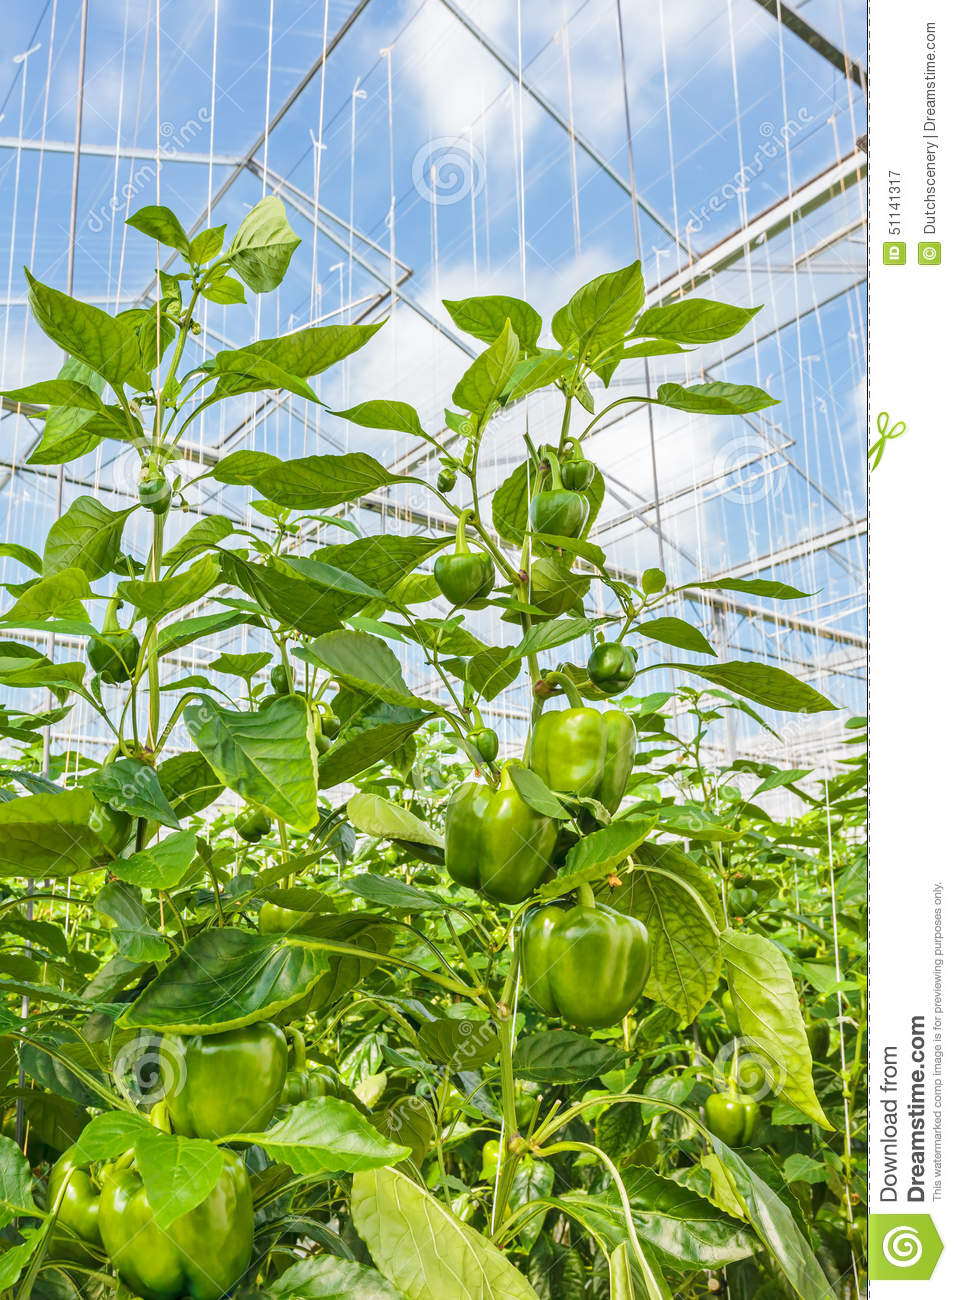 Green Bell Peppers Growing Inside A Greenhouse Stock Photo.